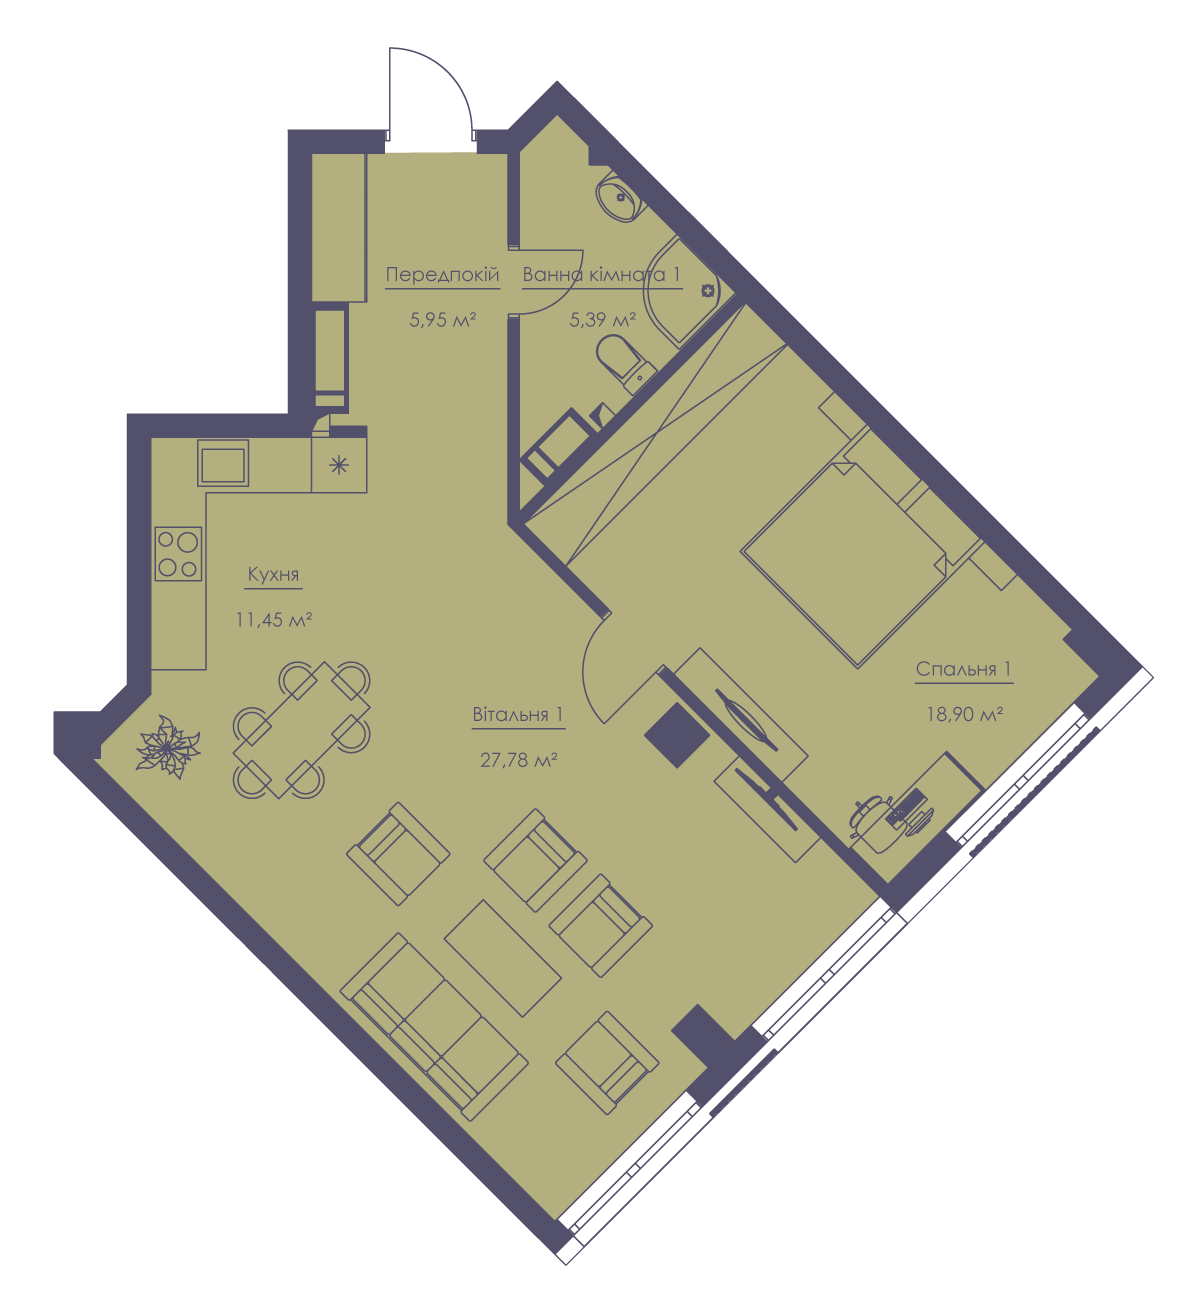 Apartment layout KV_102_2a_1_1_1-1